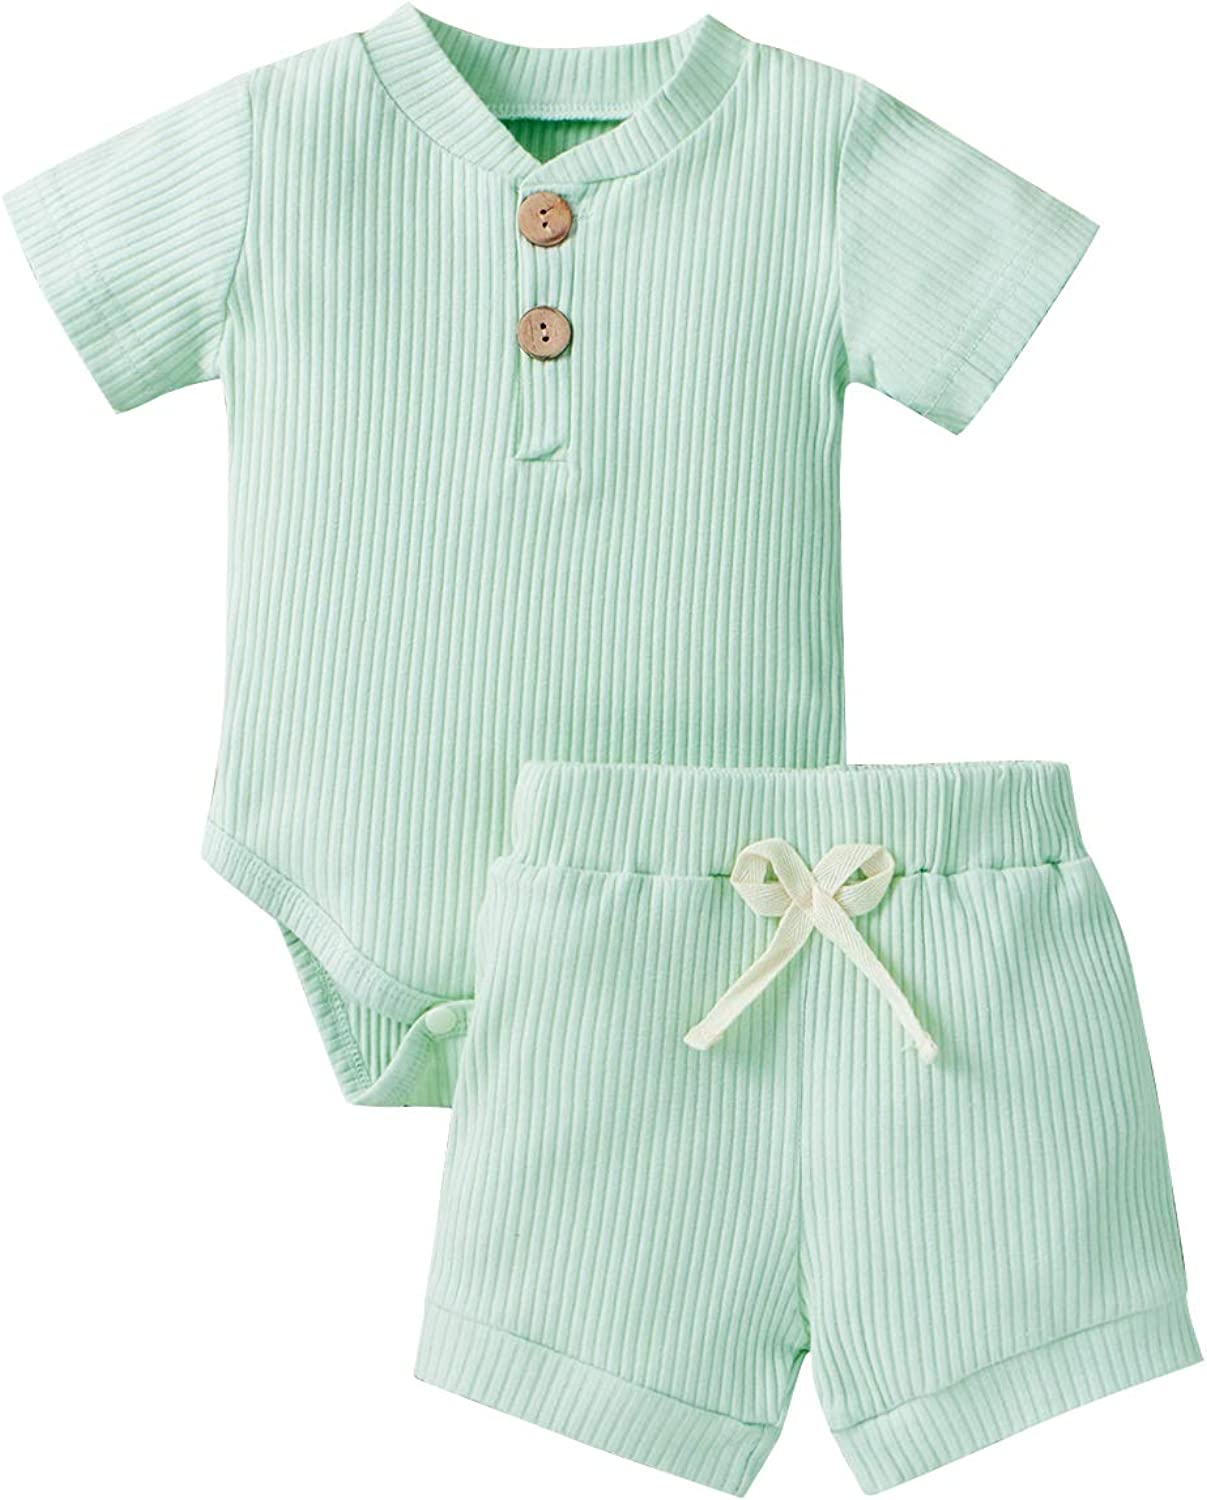 Infant Baby Boston Mall Boy Clothes Set Newborn Unisex Daily bargain sale Summer Outfit